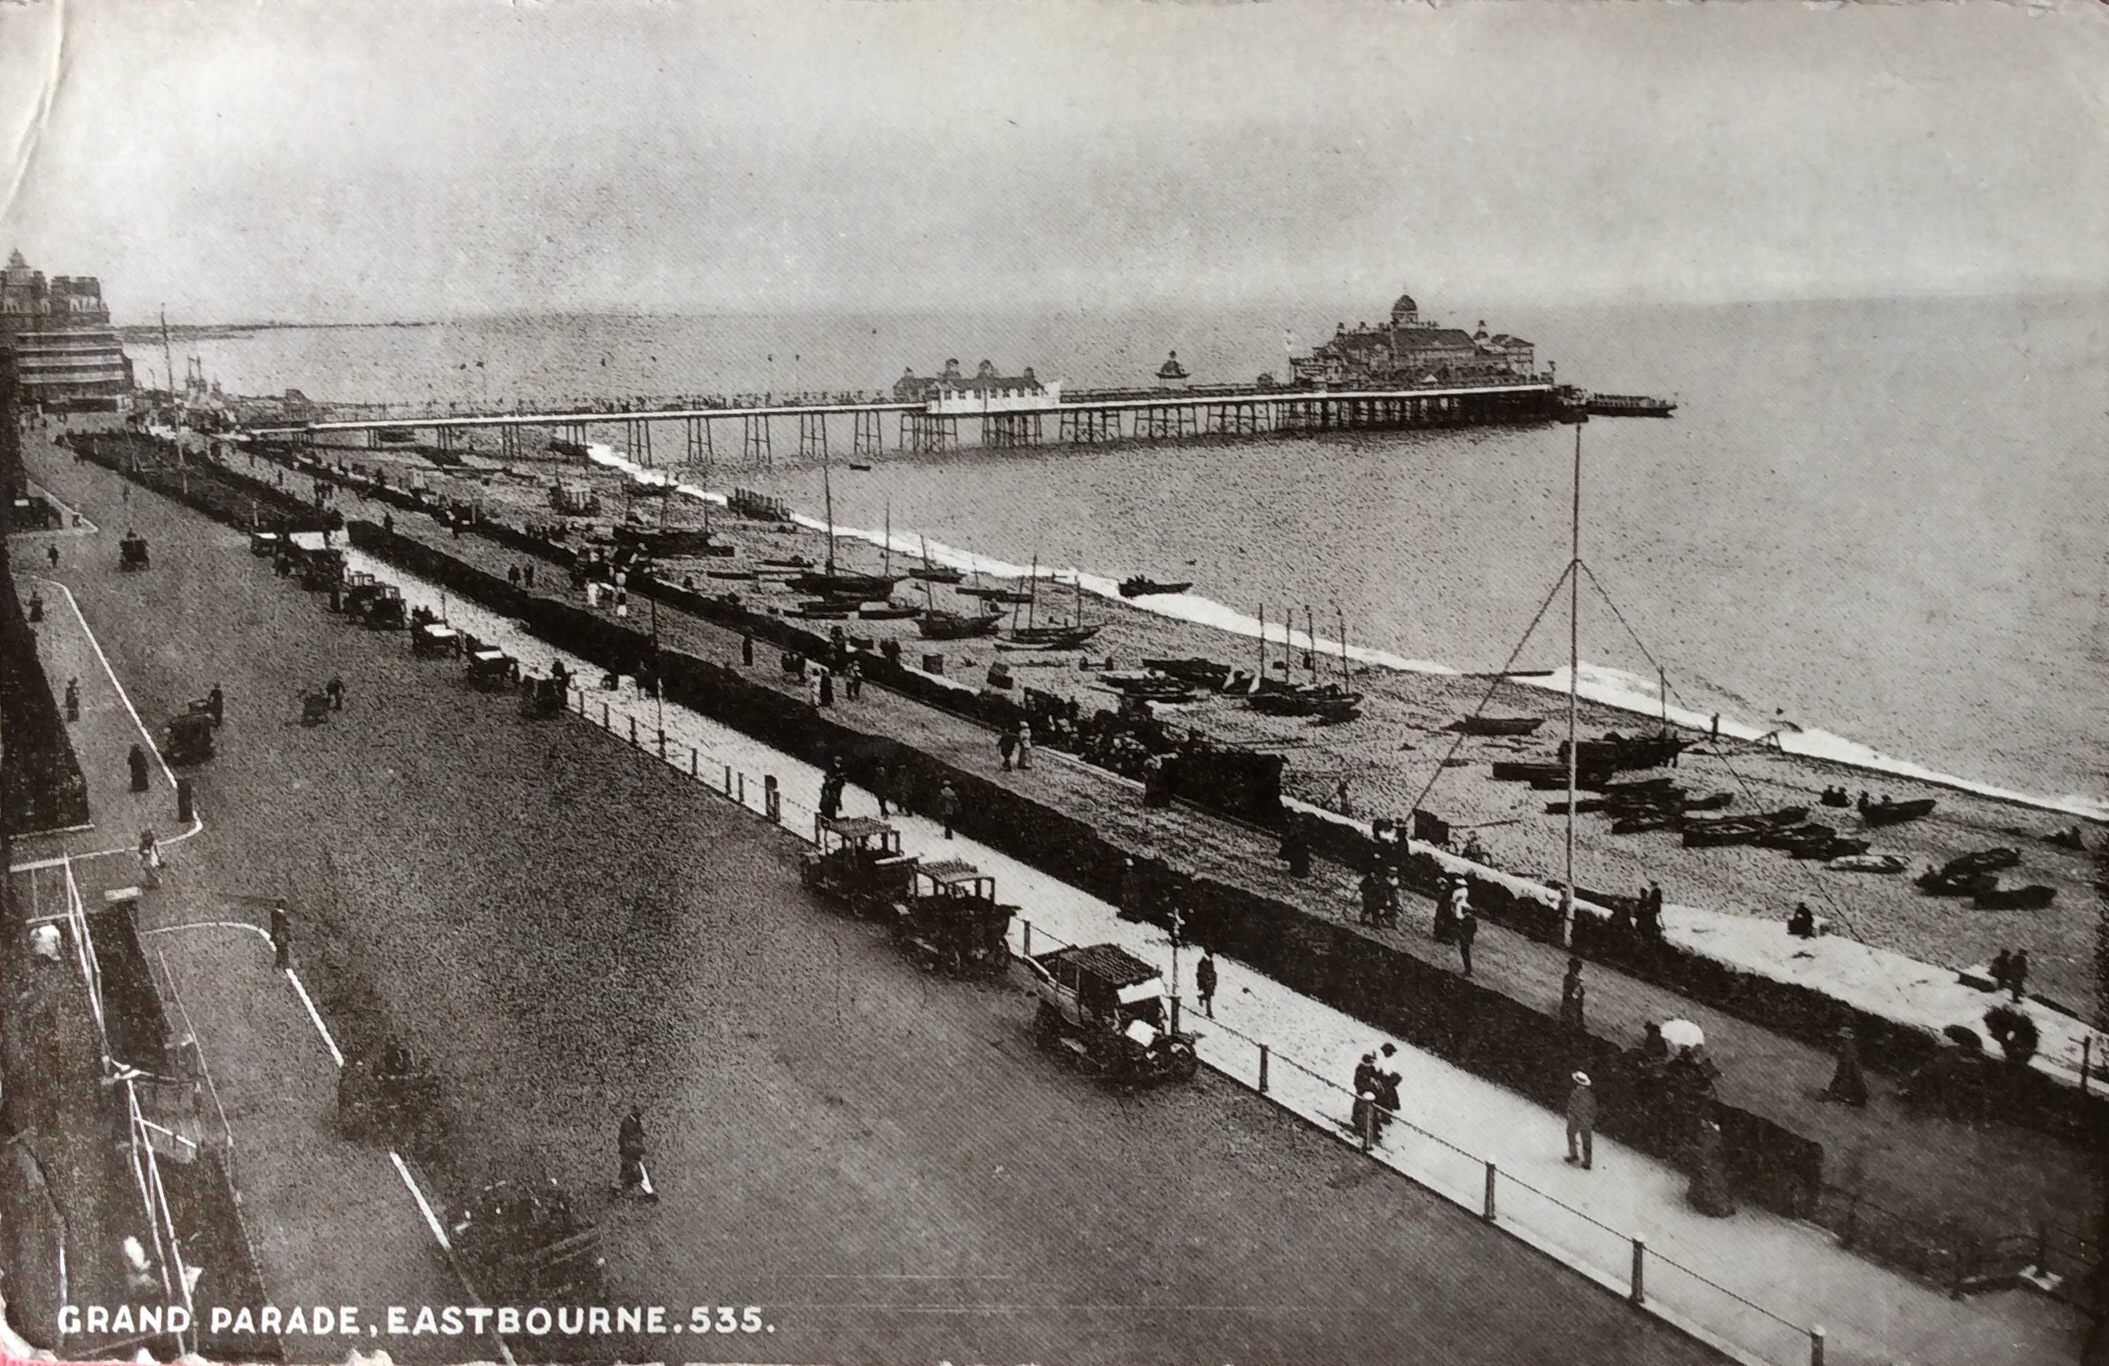 1916 November 11th Postcard from Eastbourne